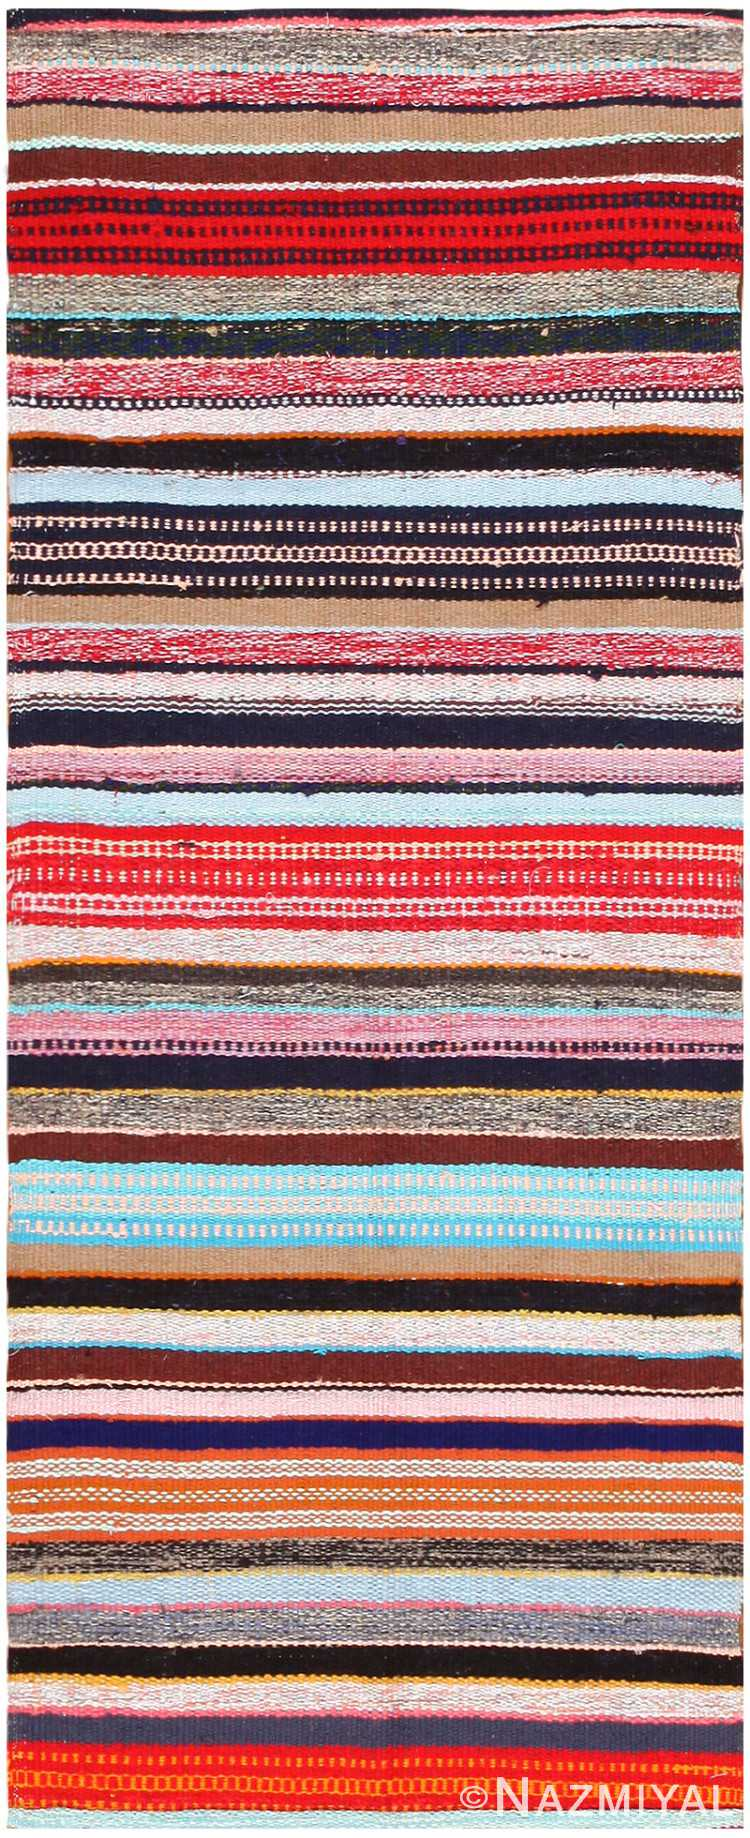 Small Rustic Vintage Swedish Rag Rug #46667 by Nazmiyal Antique Rugs